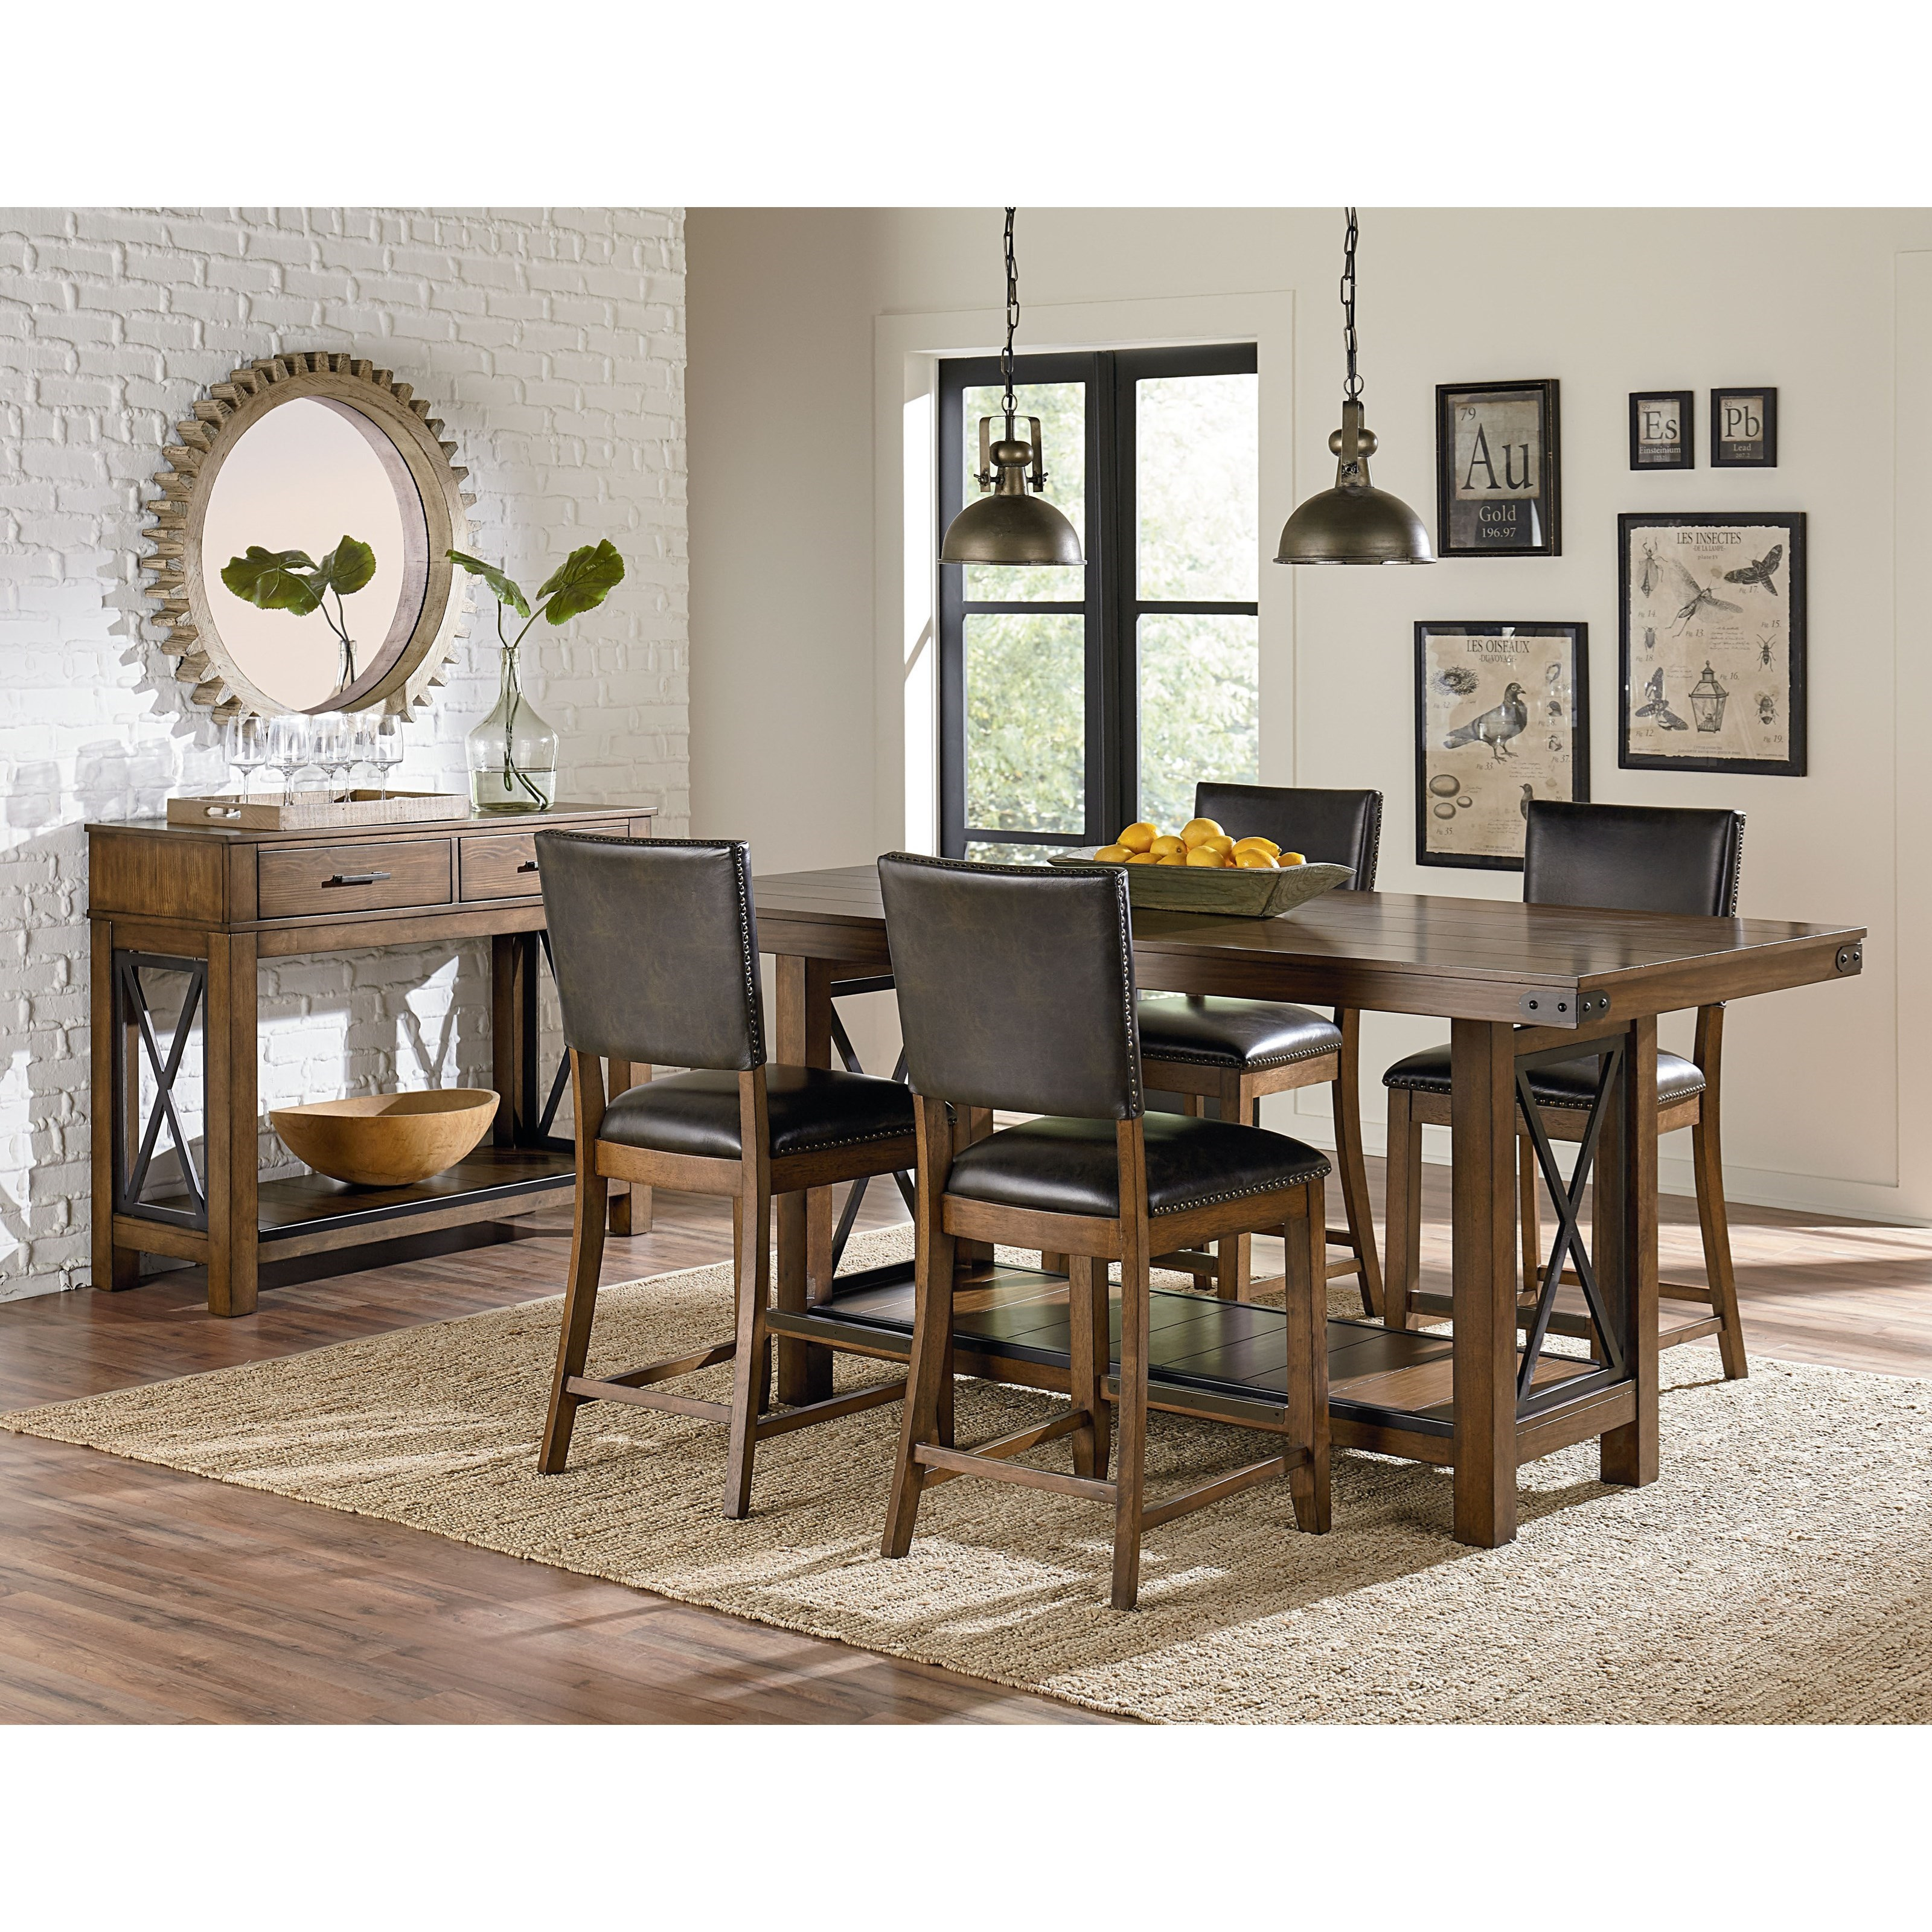 Standard furniture benson casual dining room group for Casual dining room furniture